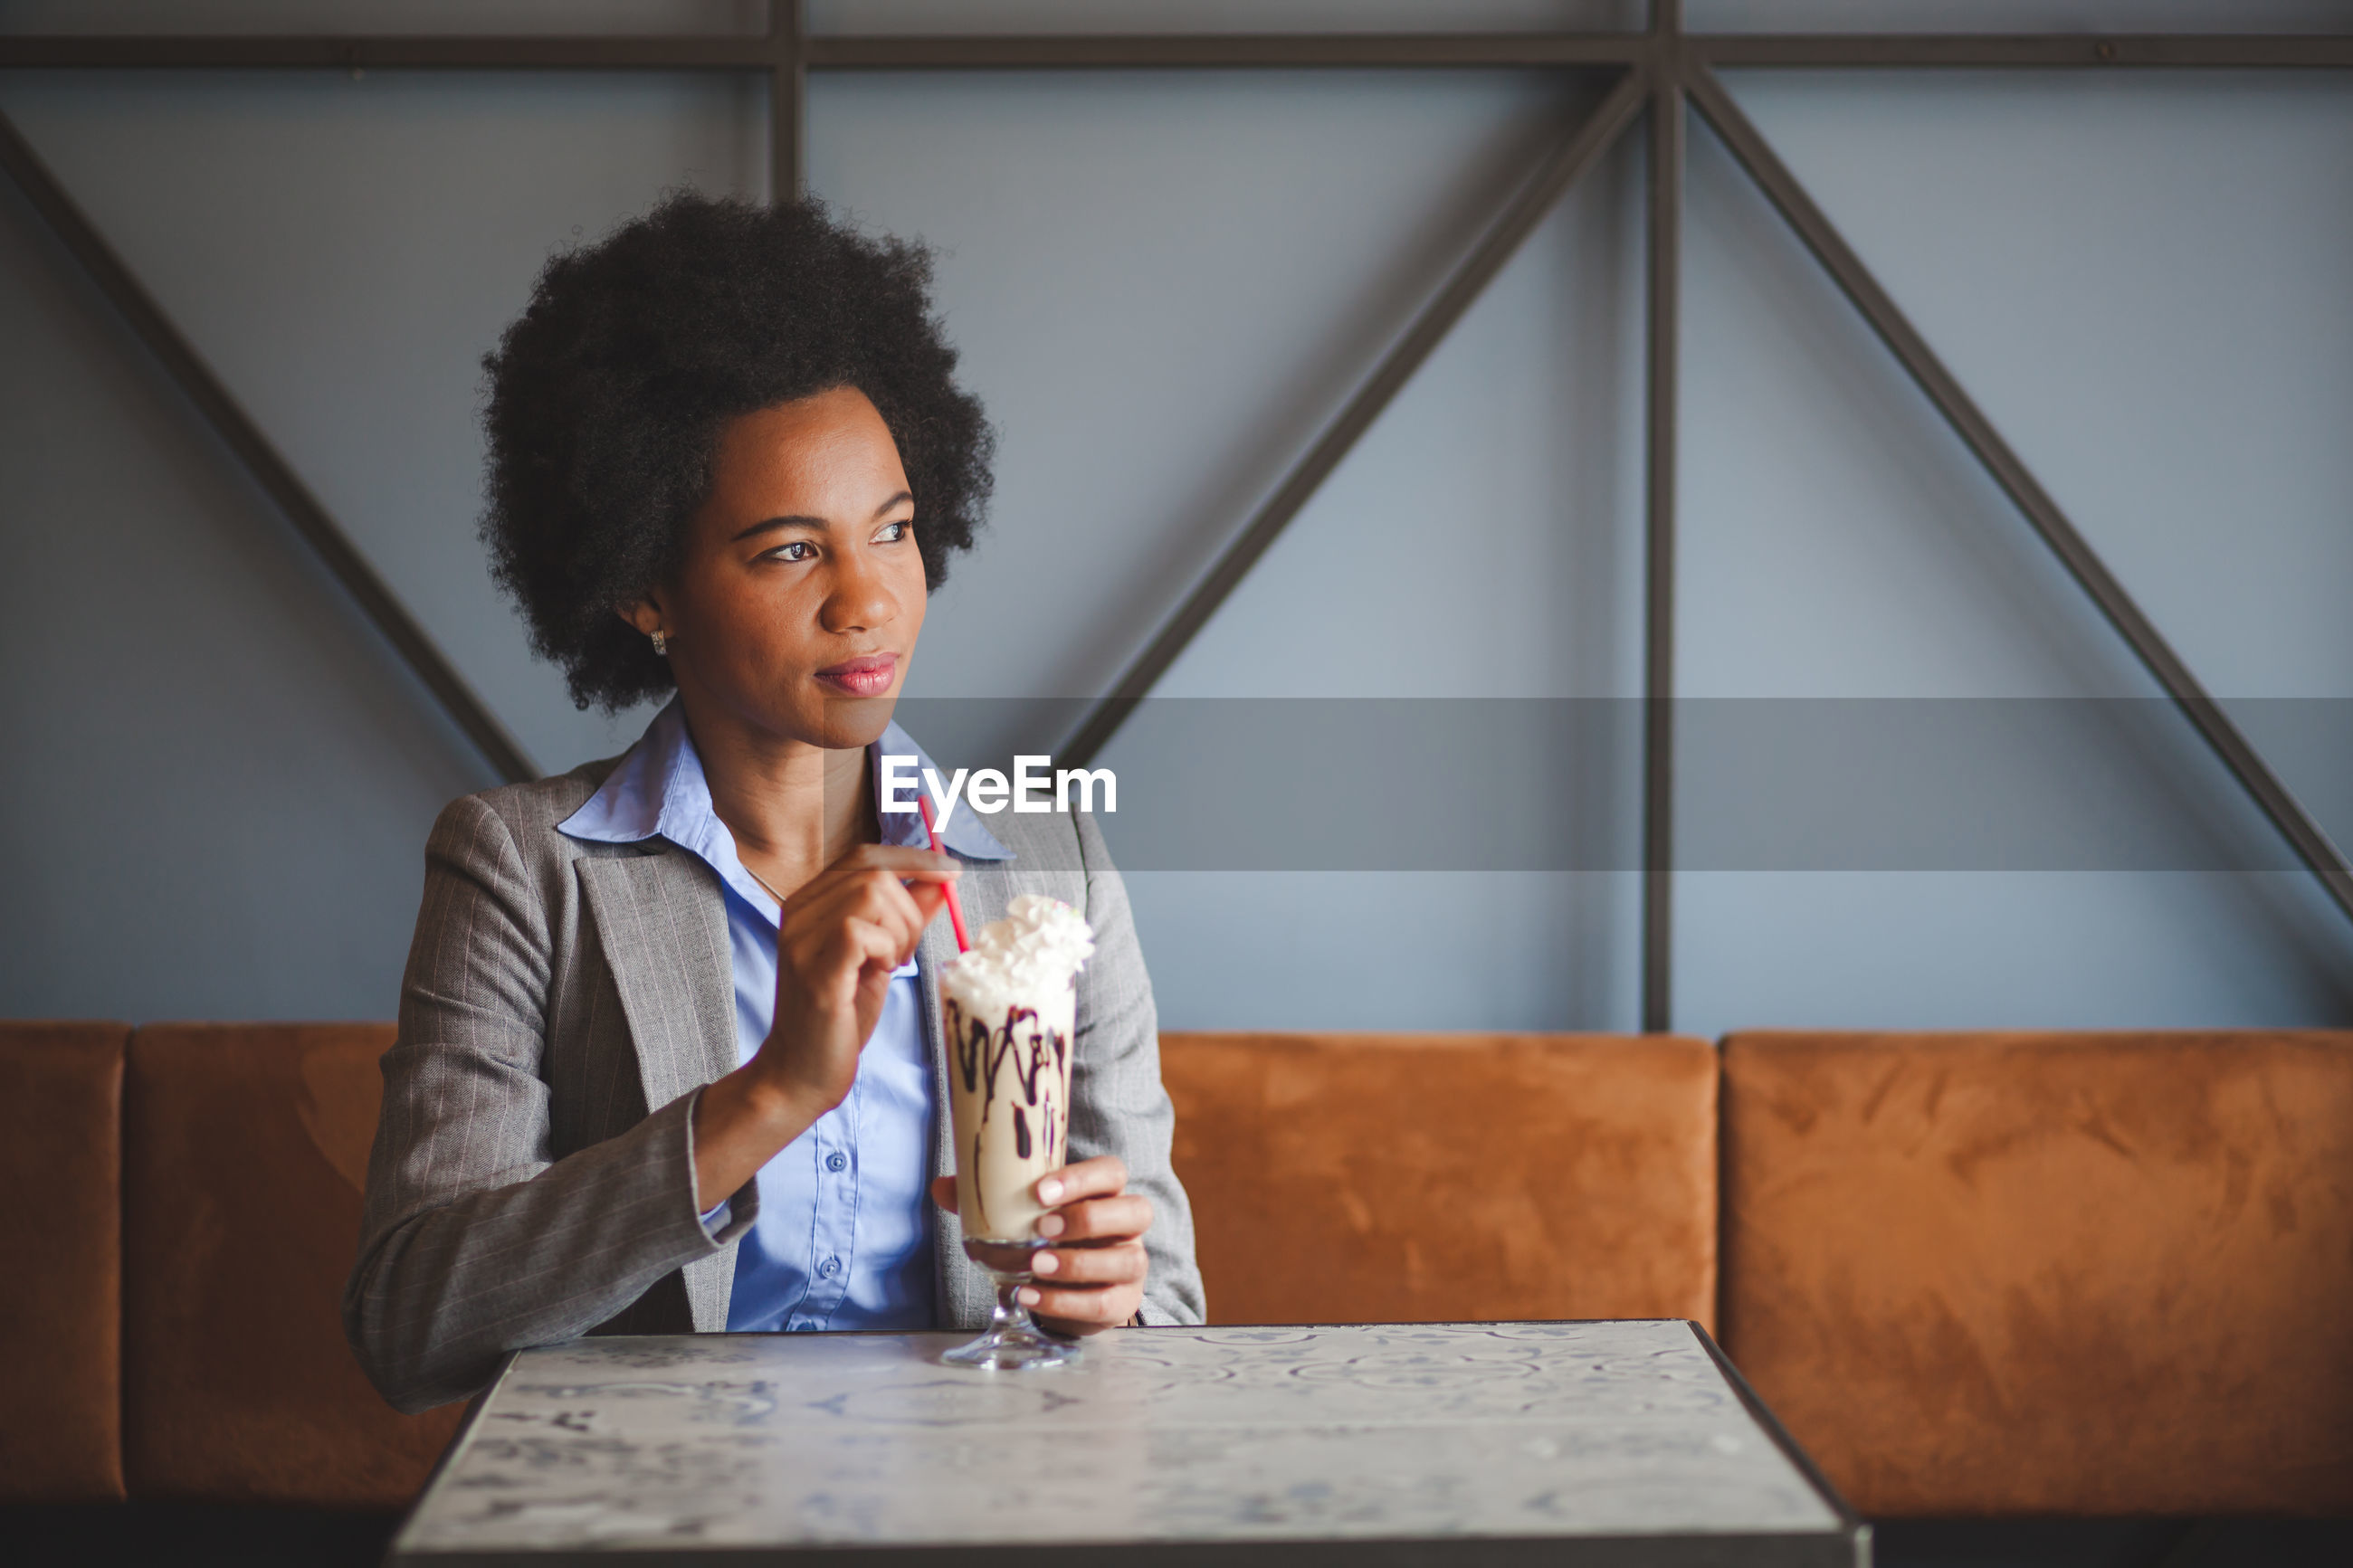 Businesswoman with cold coffee sitting in cafe